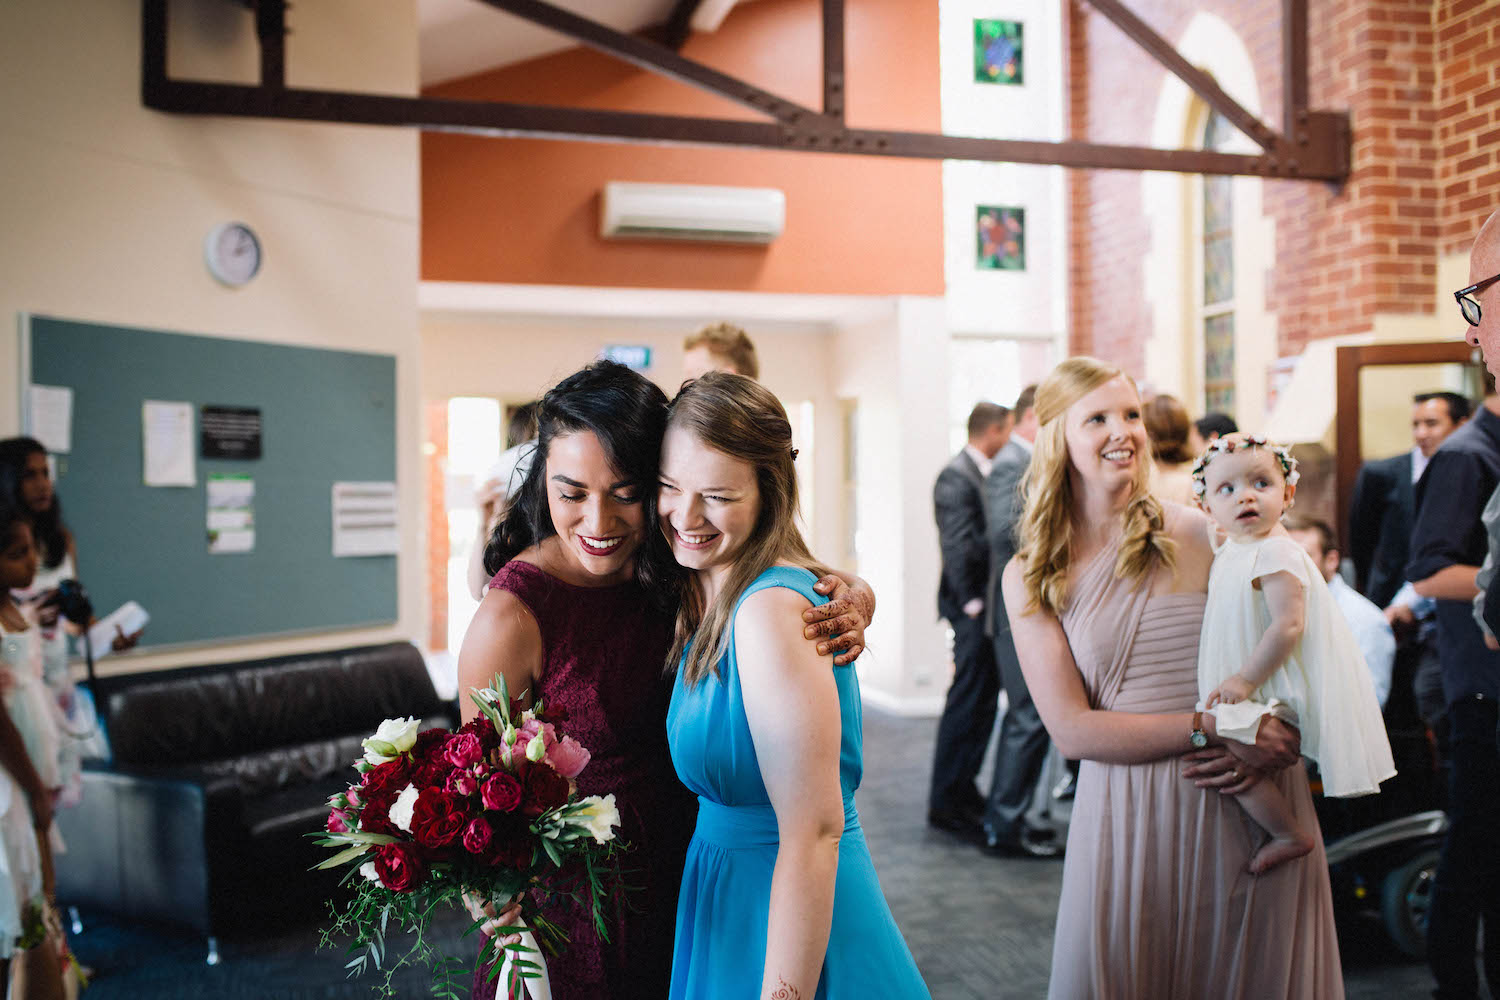 Sisters-in-Law celebrating after a beautiful wedding ceremony at St Matthew's Anglican Church